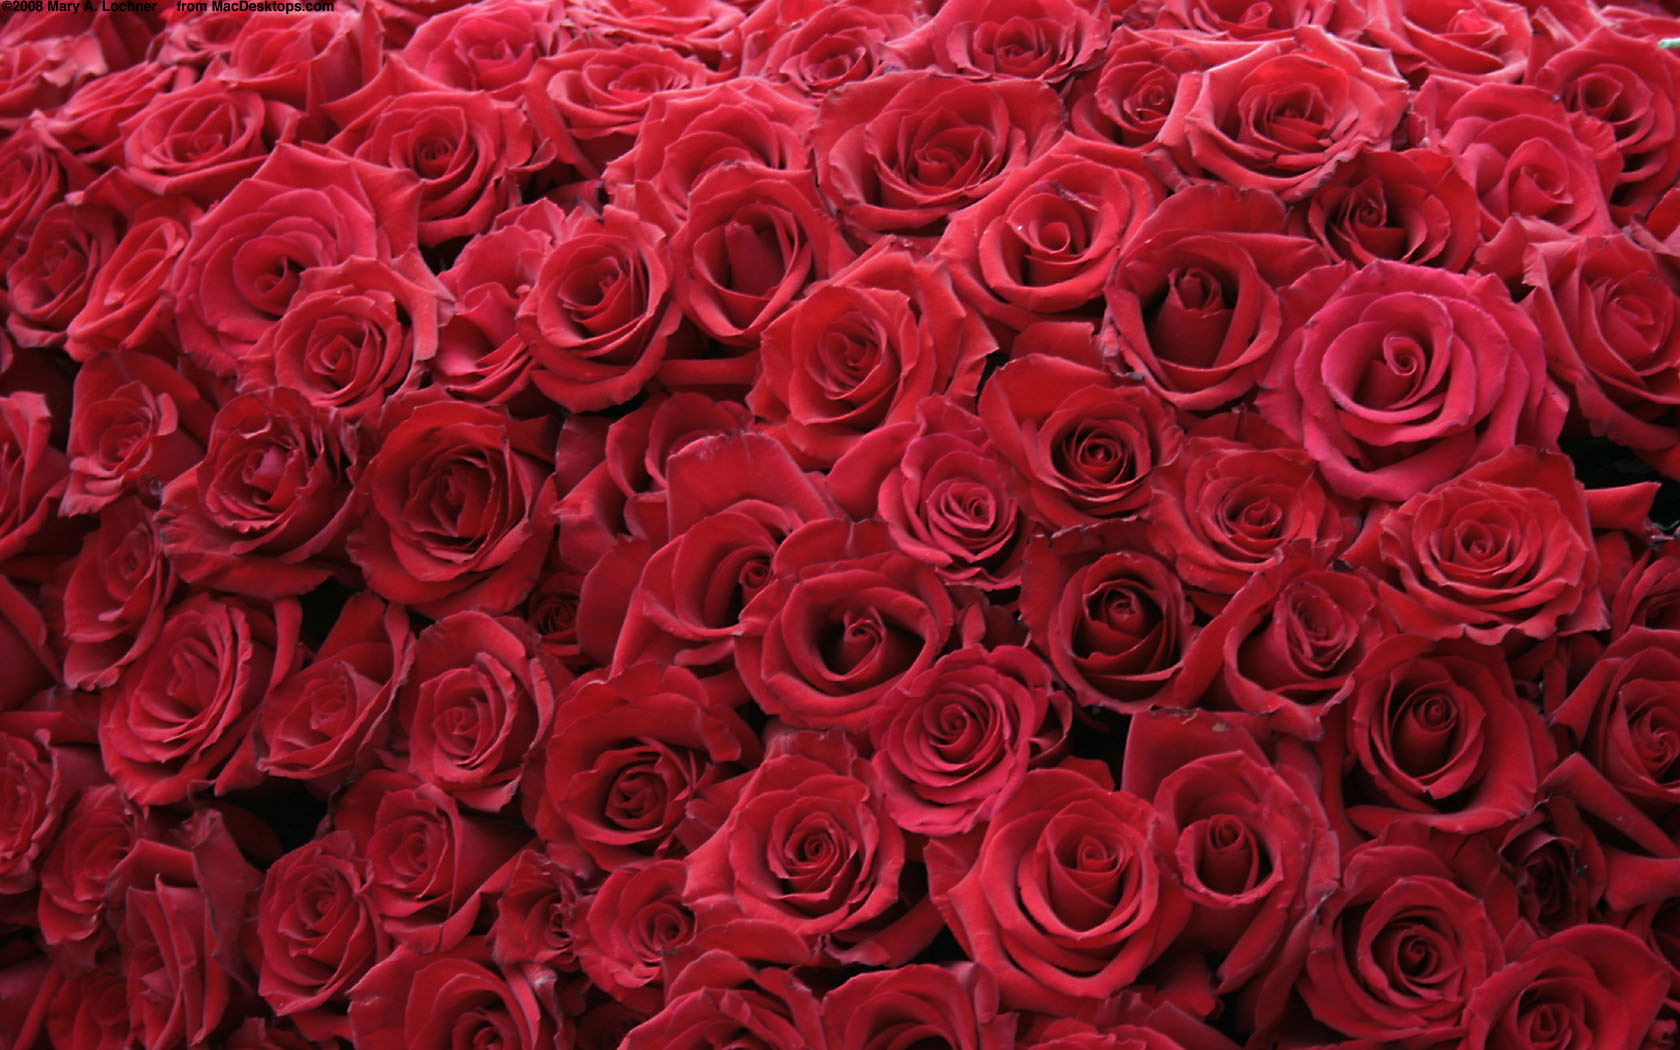 Desktop wallpaper hd roses